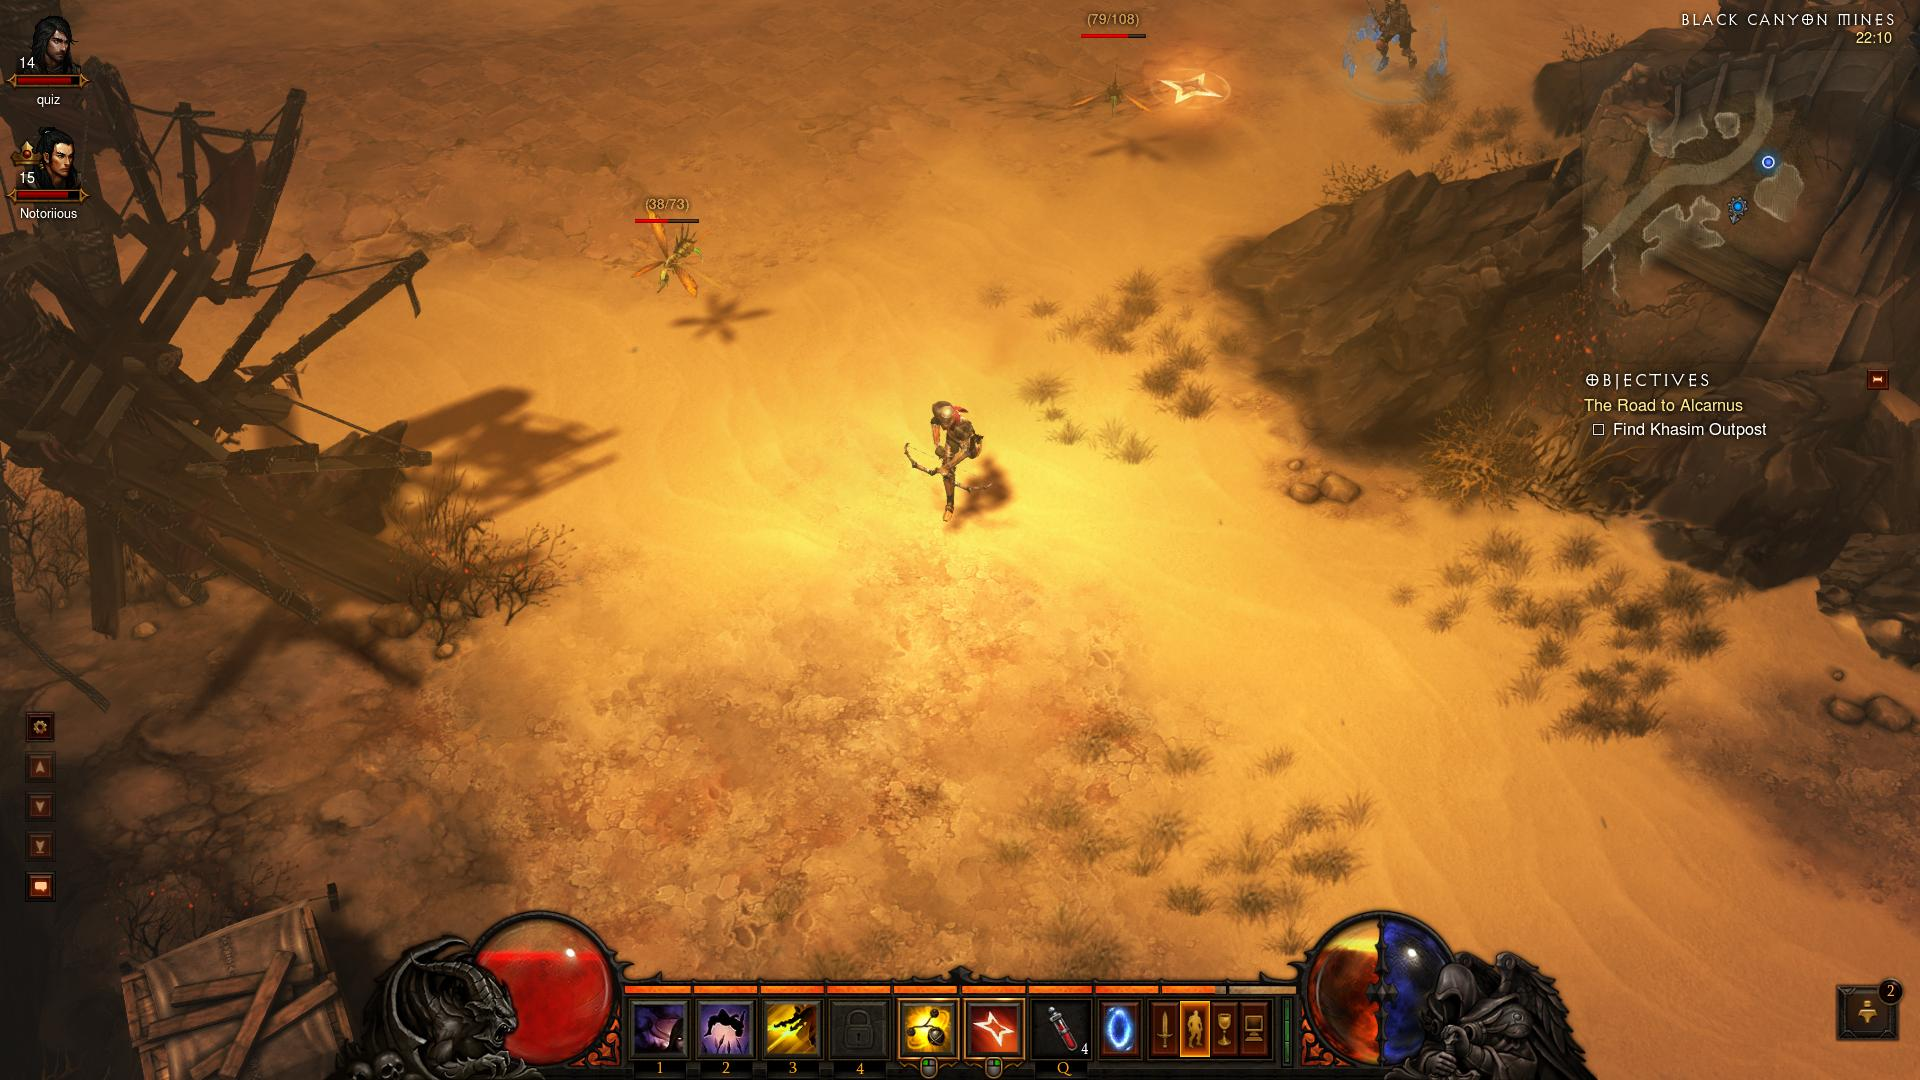 diablo 3 account a2p2